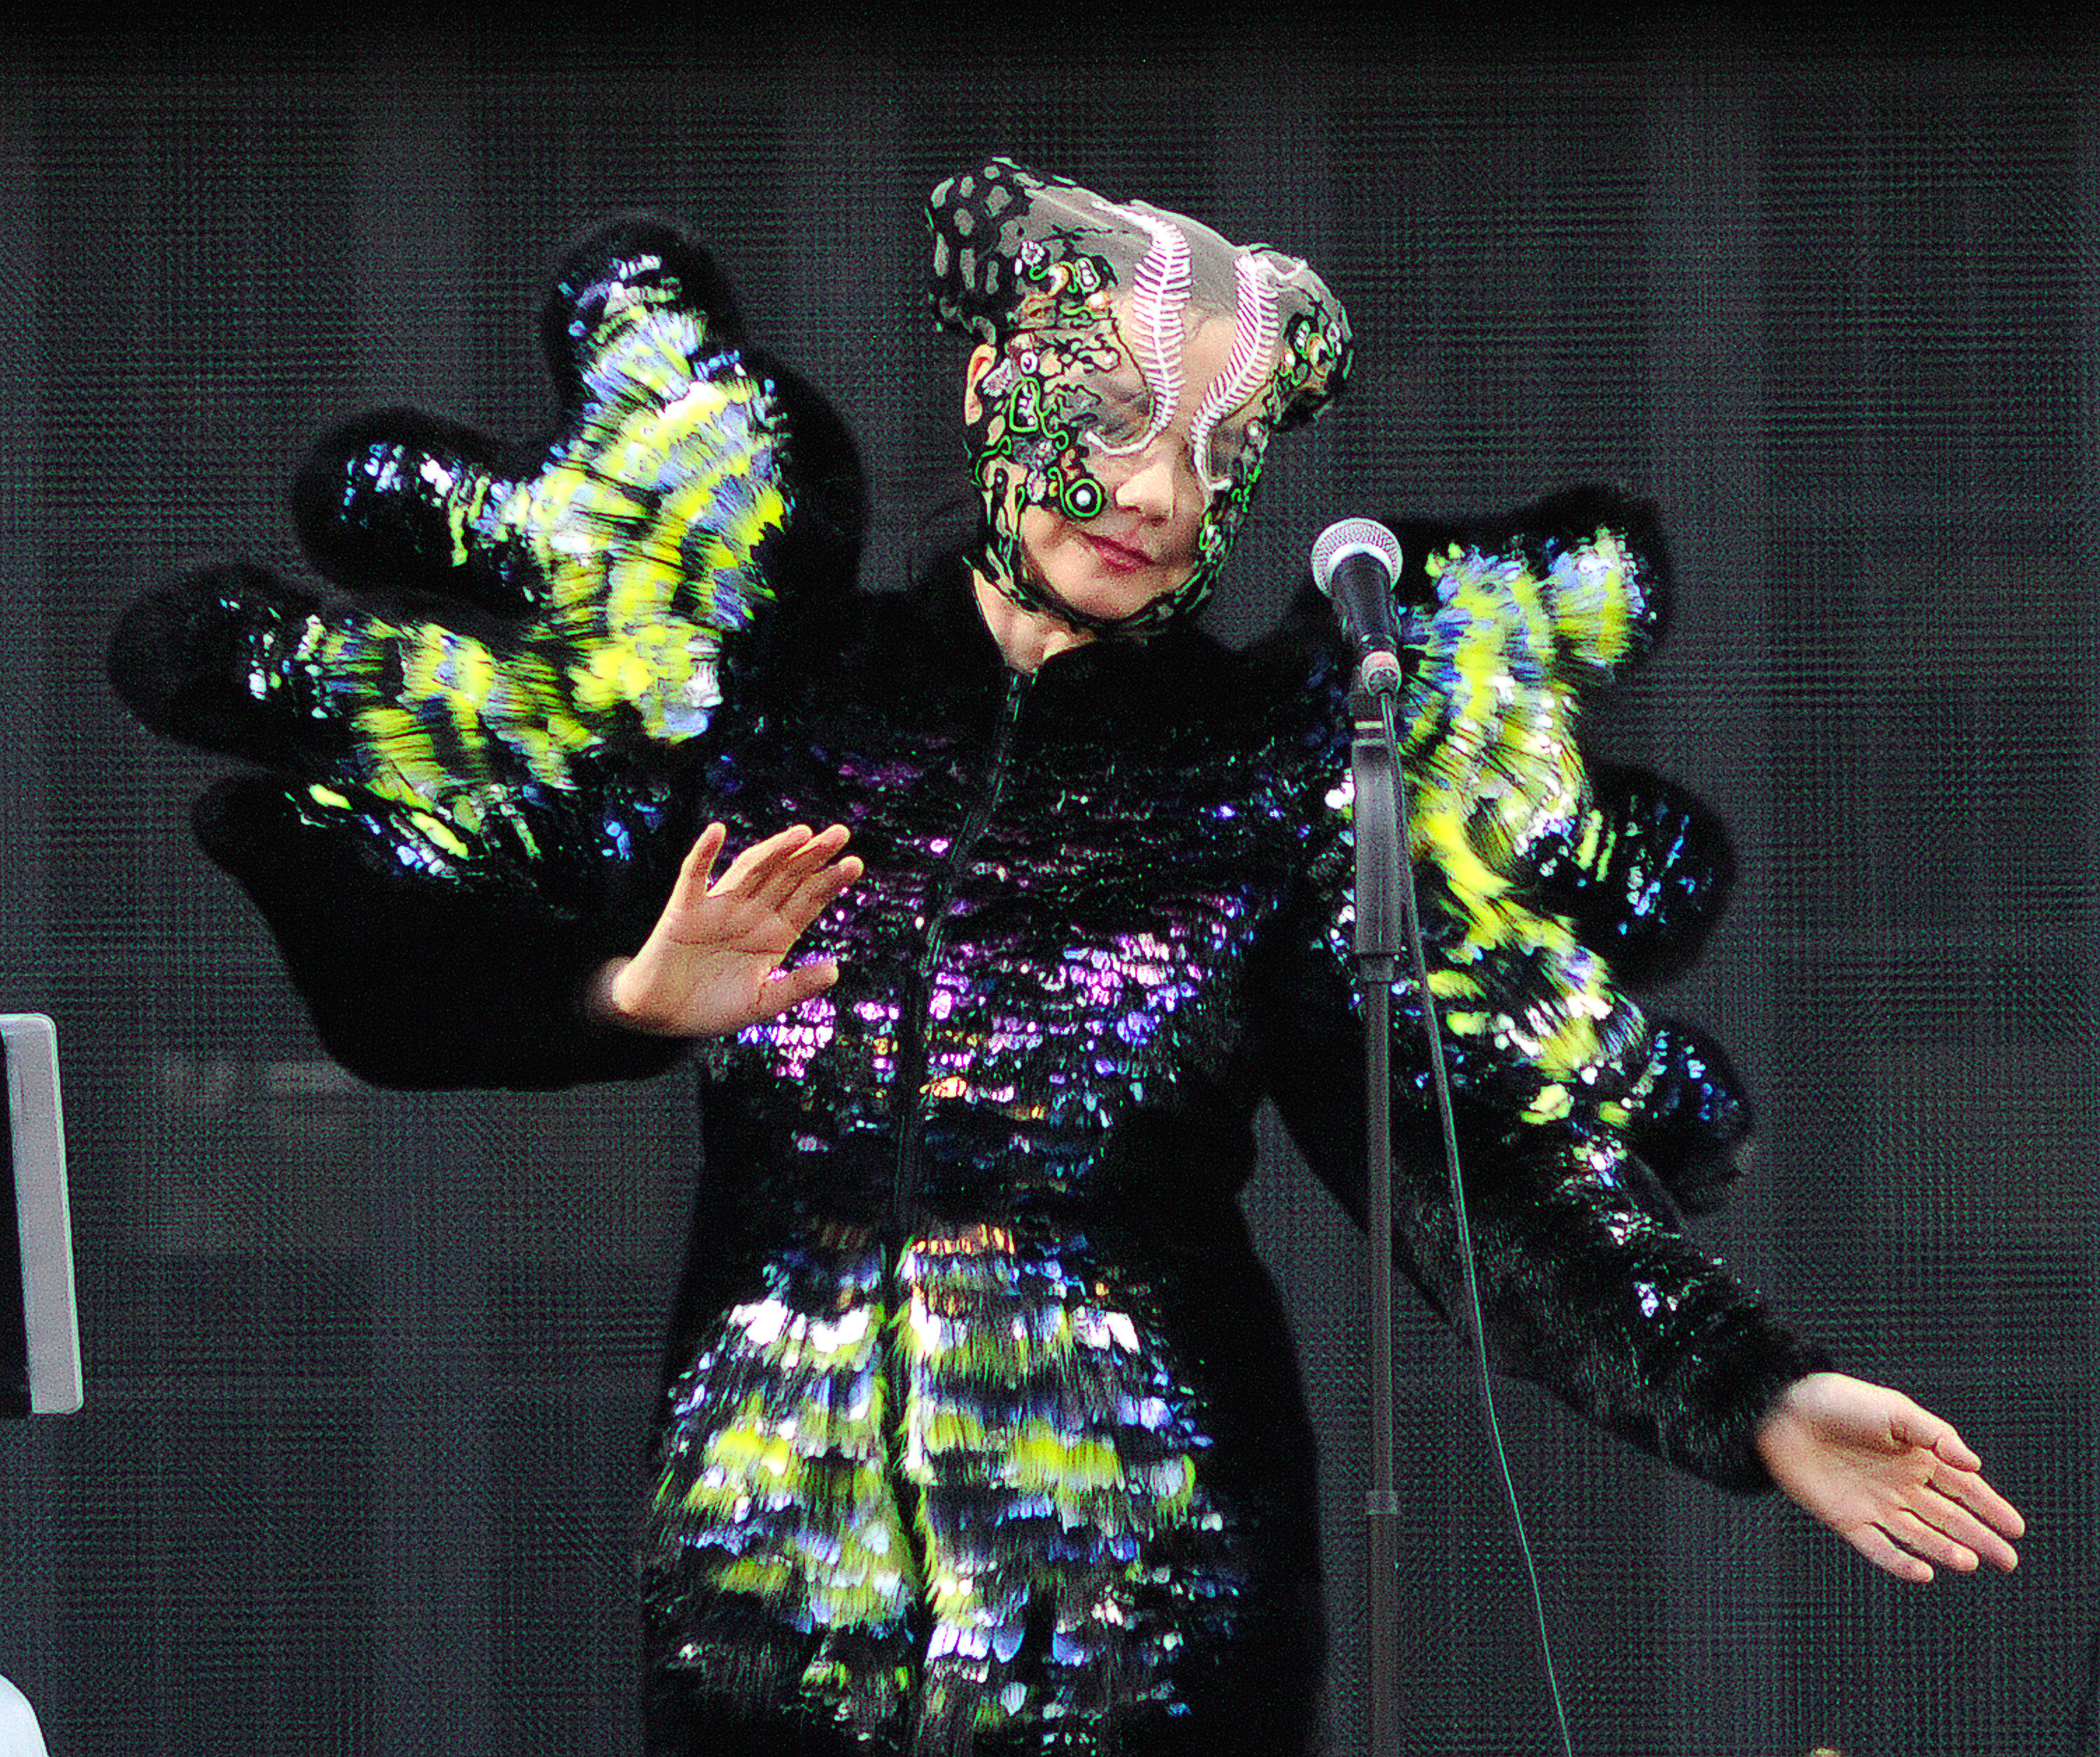 Björk performs during the 2015 Governors Ball Music Festival in New York City on June 6, 2015.